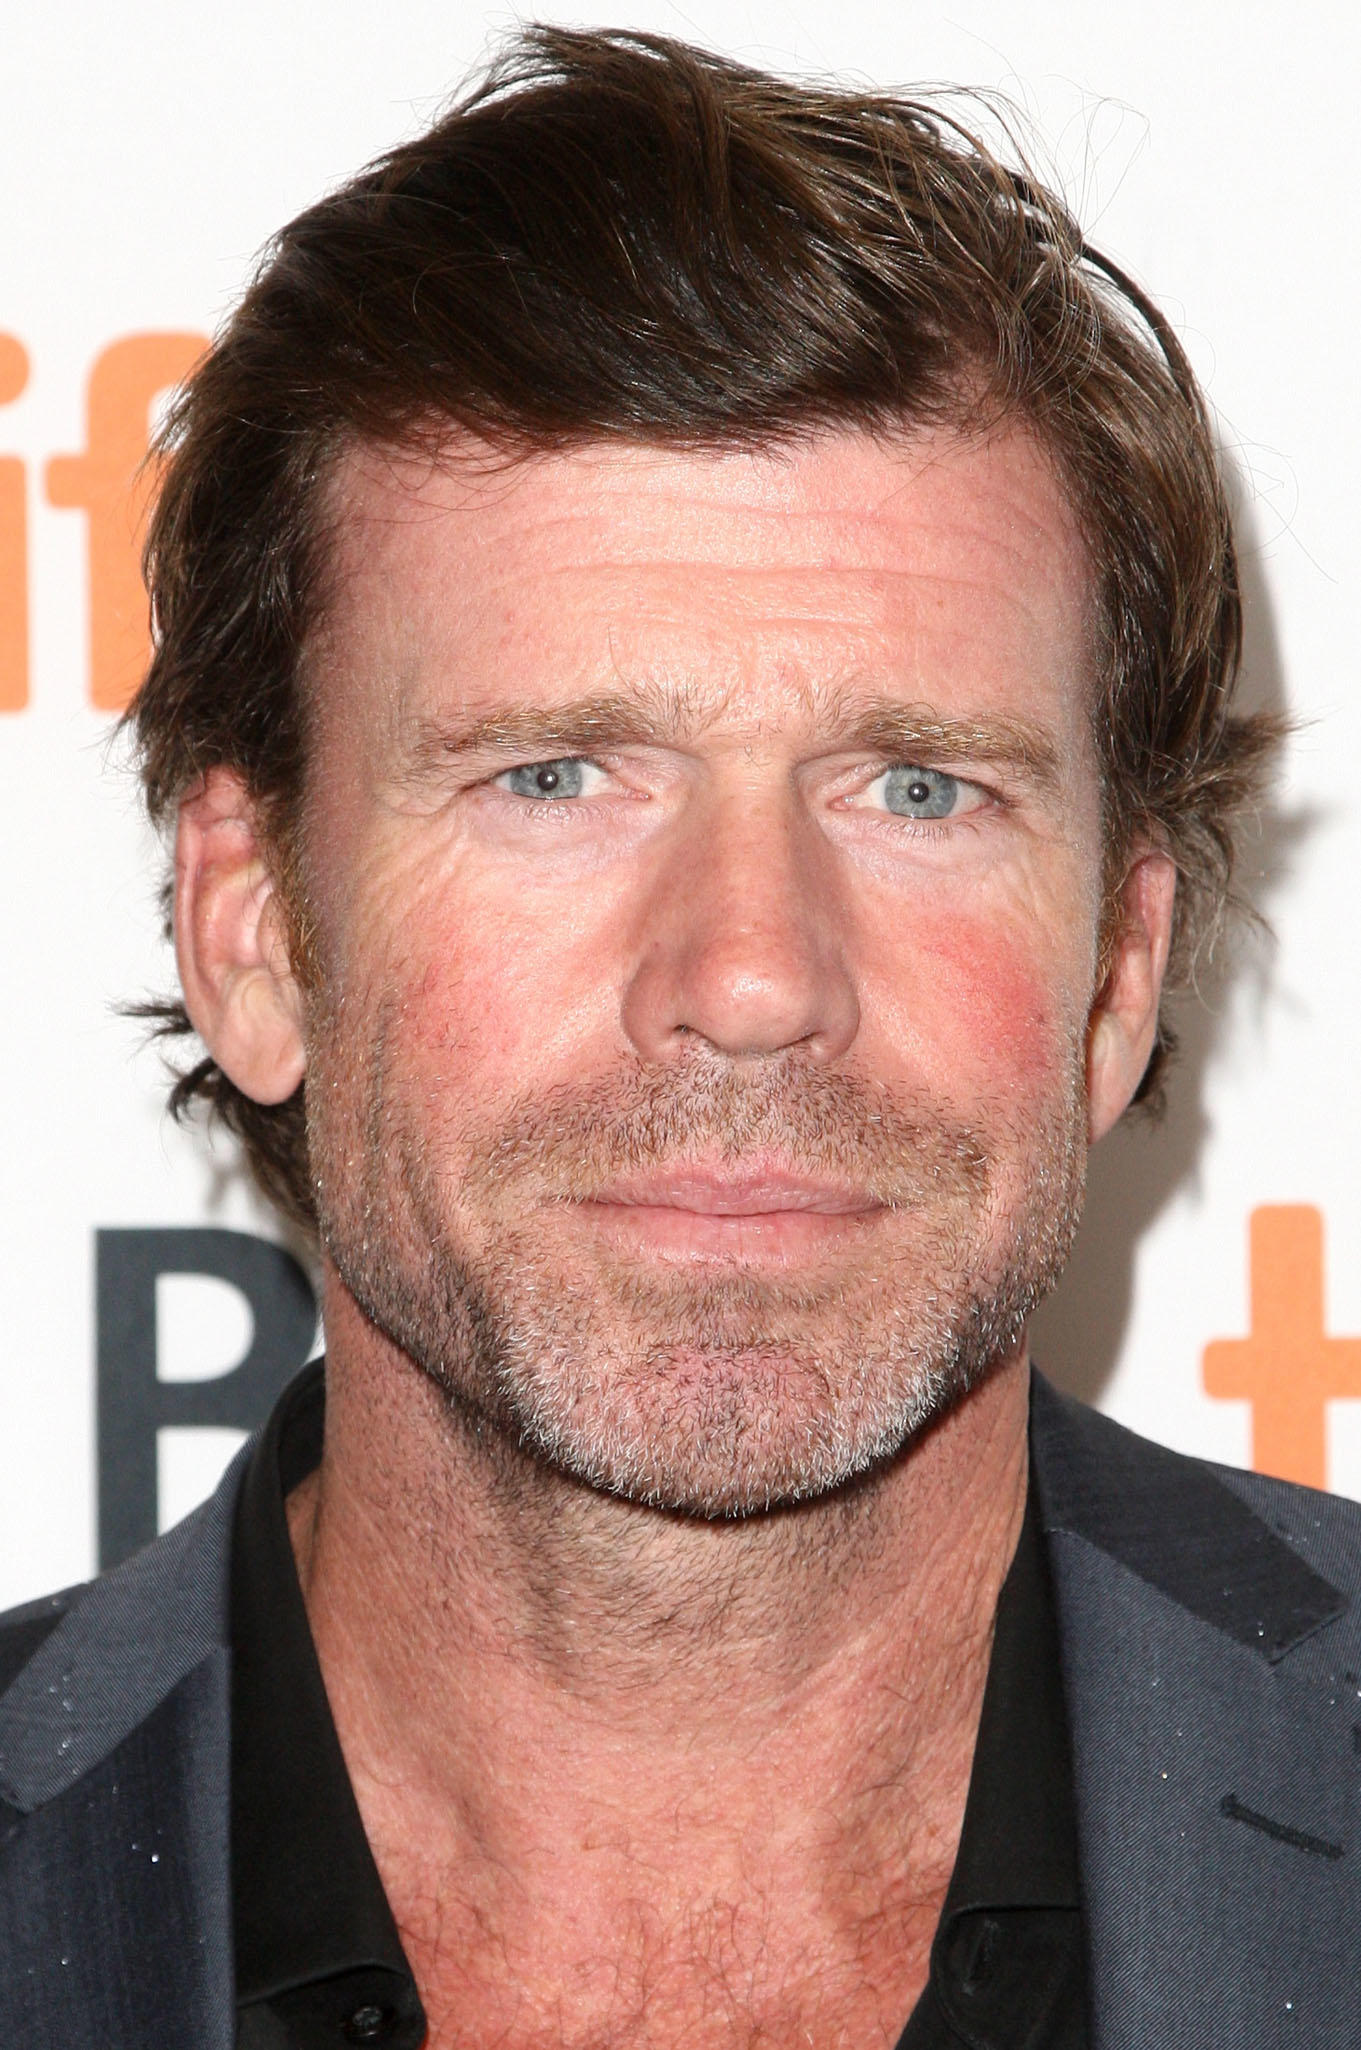 Taylor Sheridan at the